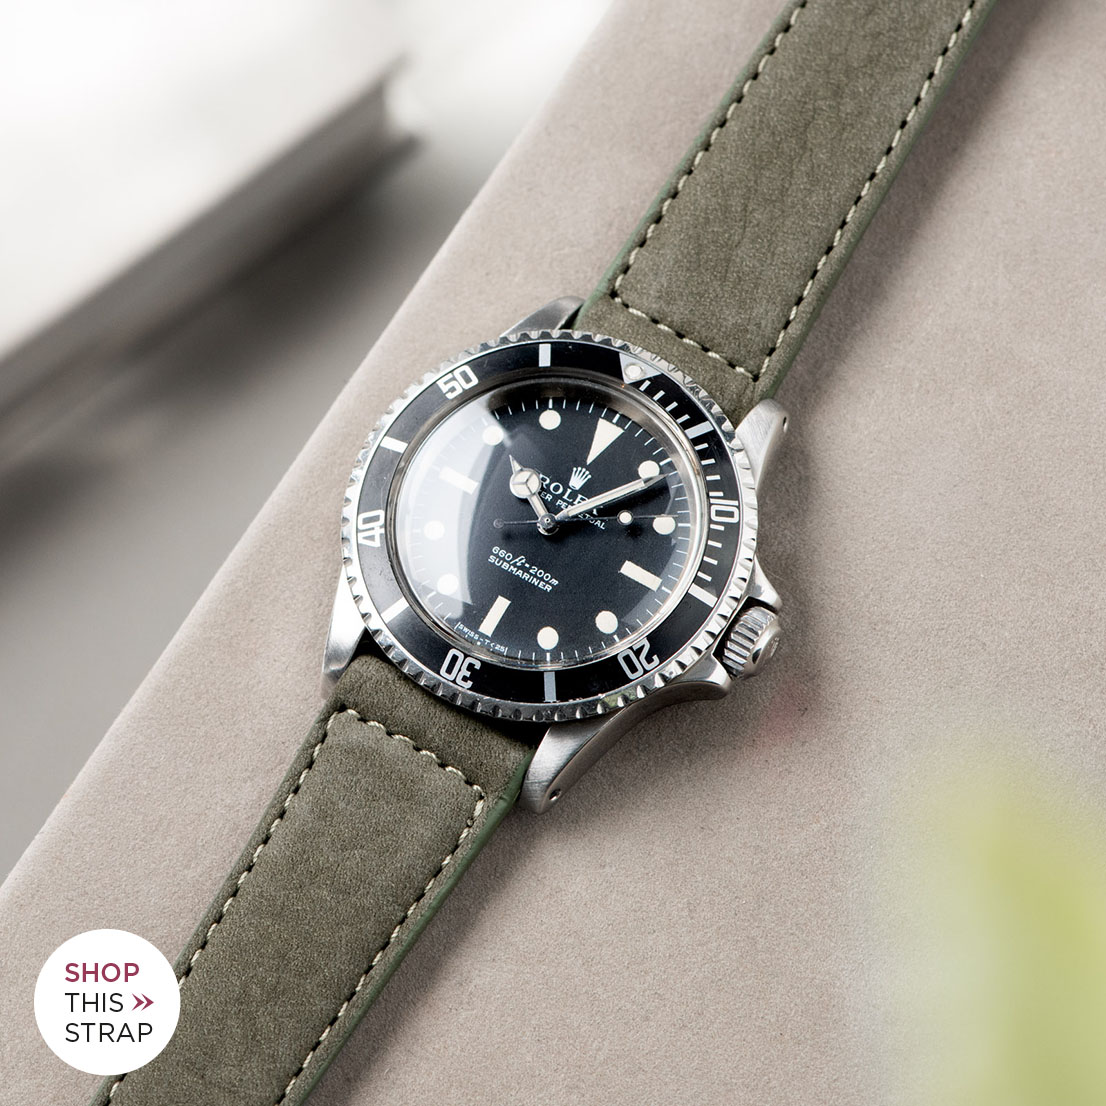 Bulang and Sons_Strap Guide_Rolex 5513 Submariner_OLIVE GREY NUBUCK LEATHER WATCH STRAP